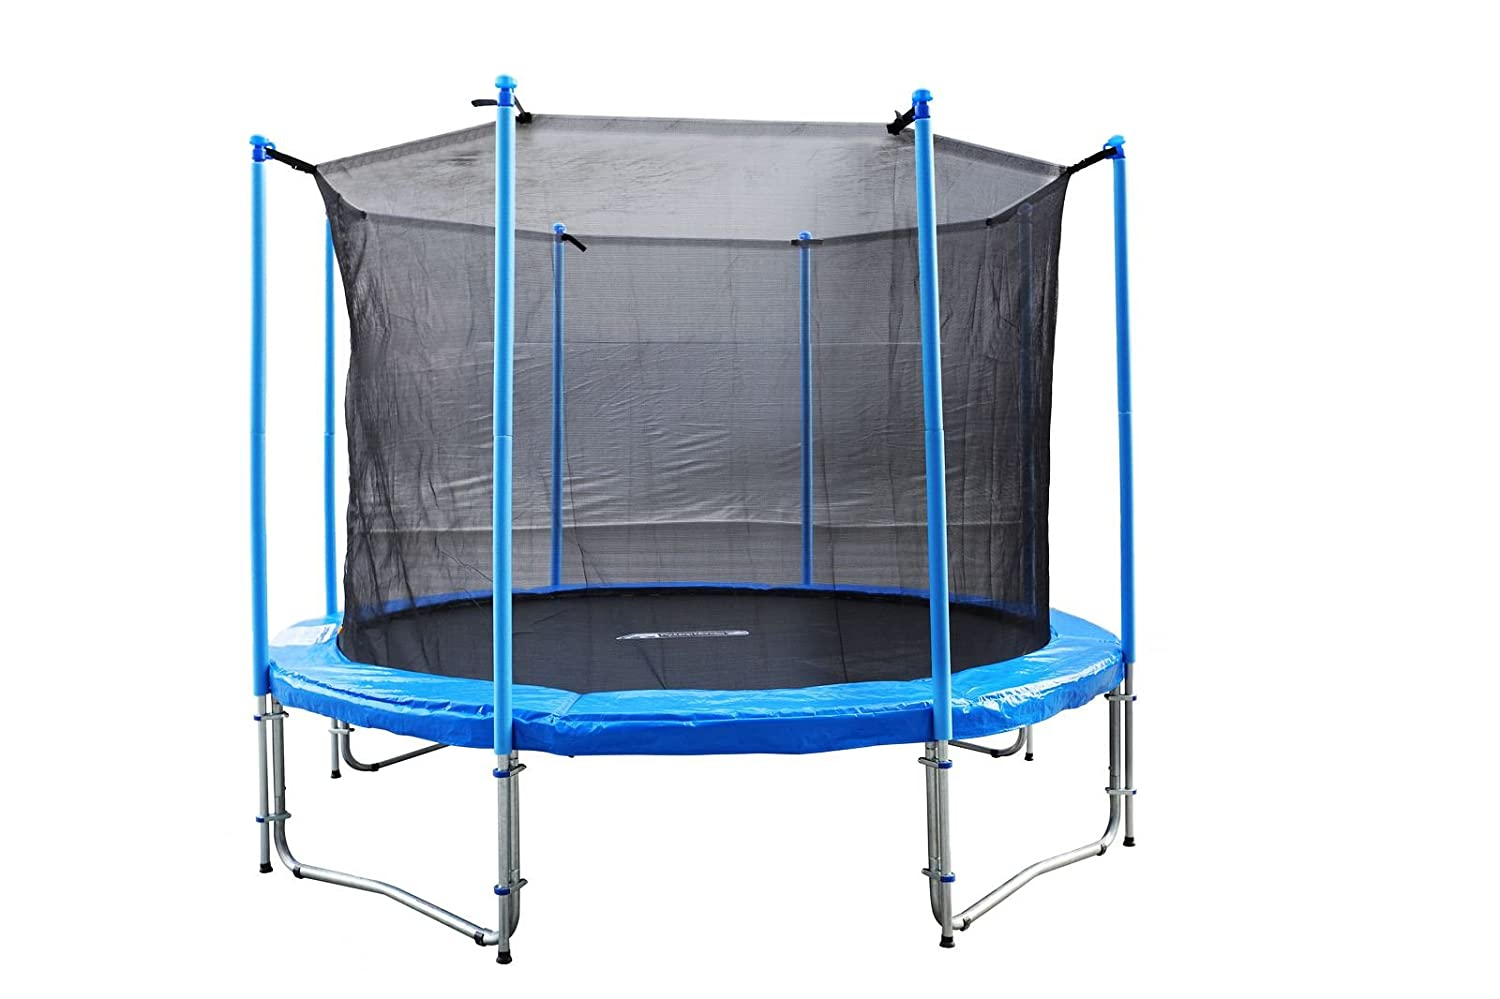 FA Sports Gartentrampolin mit Sicherheitsnetz Flyjump Monster II, blau, 366 cm, 1221